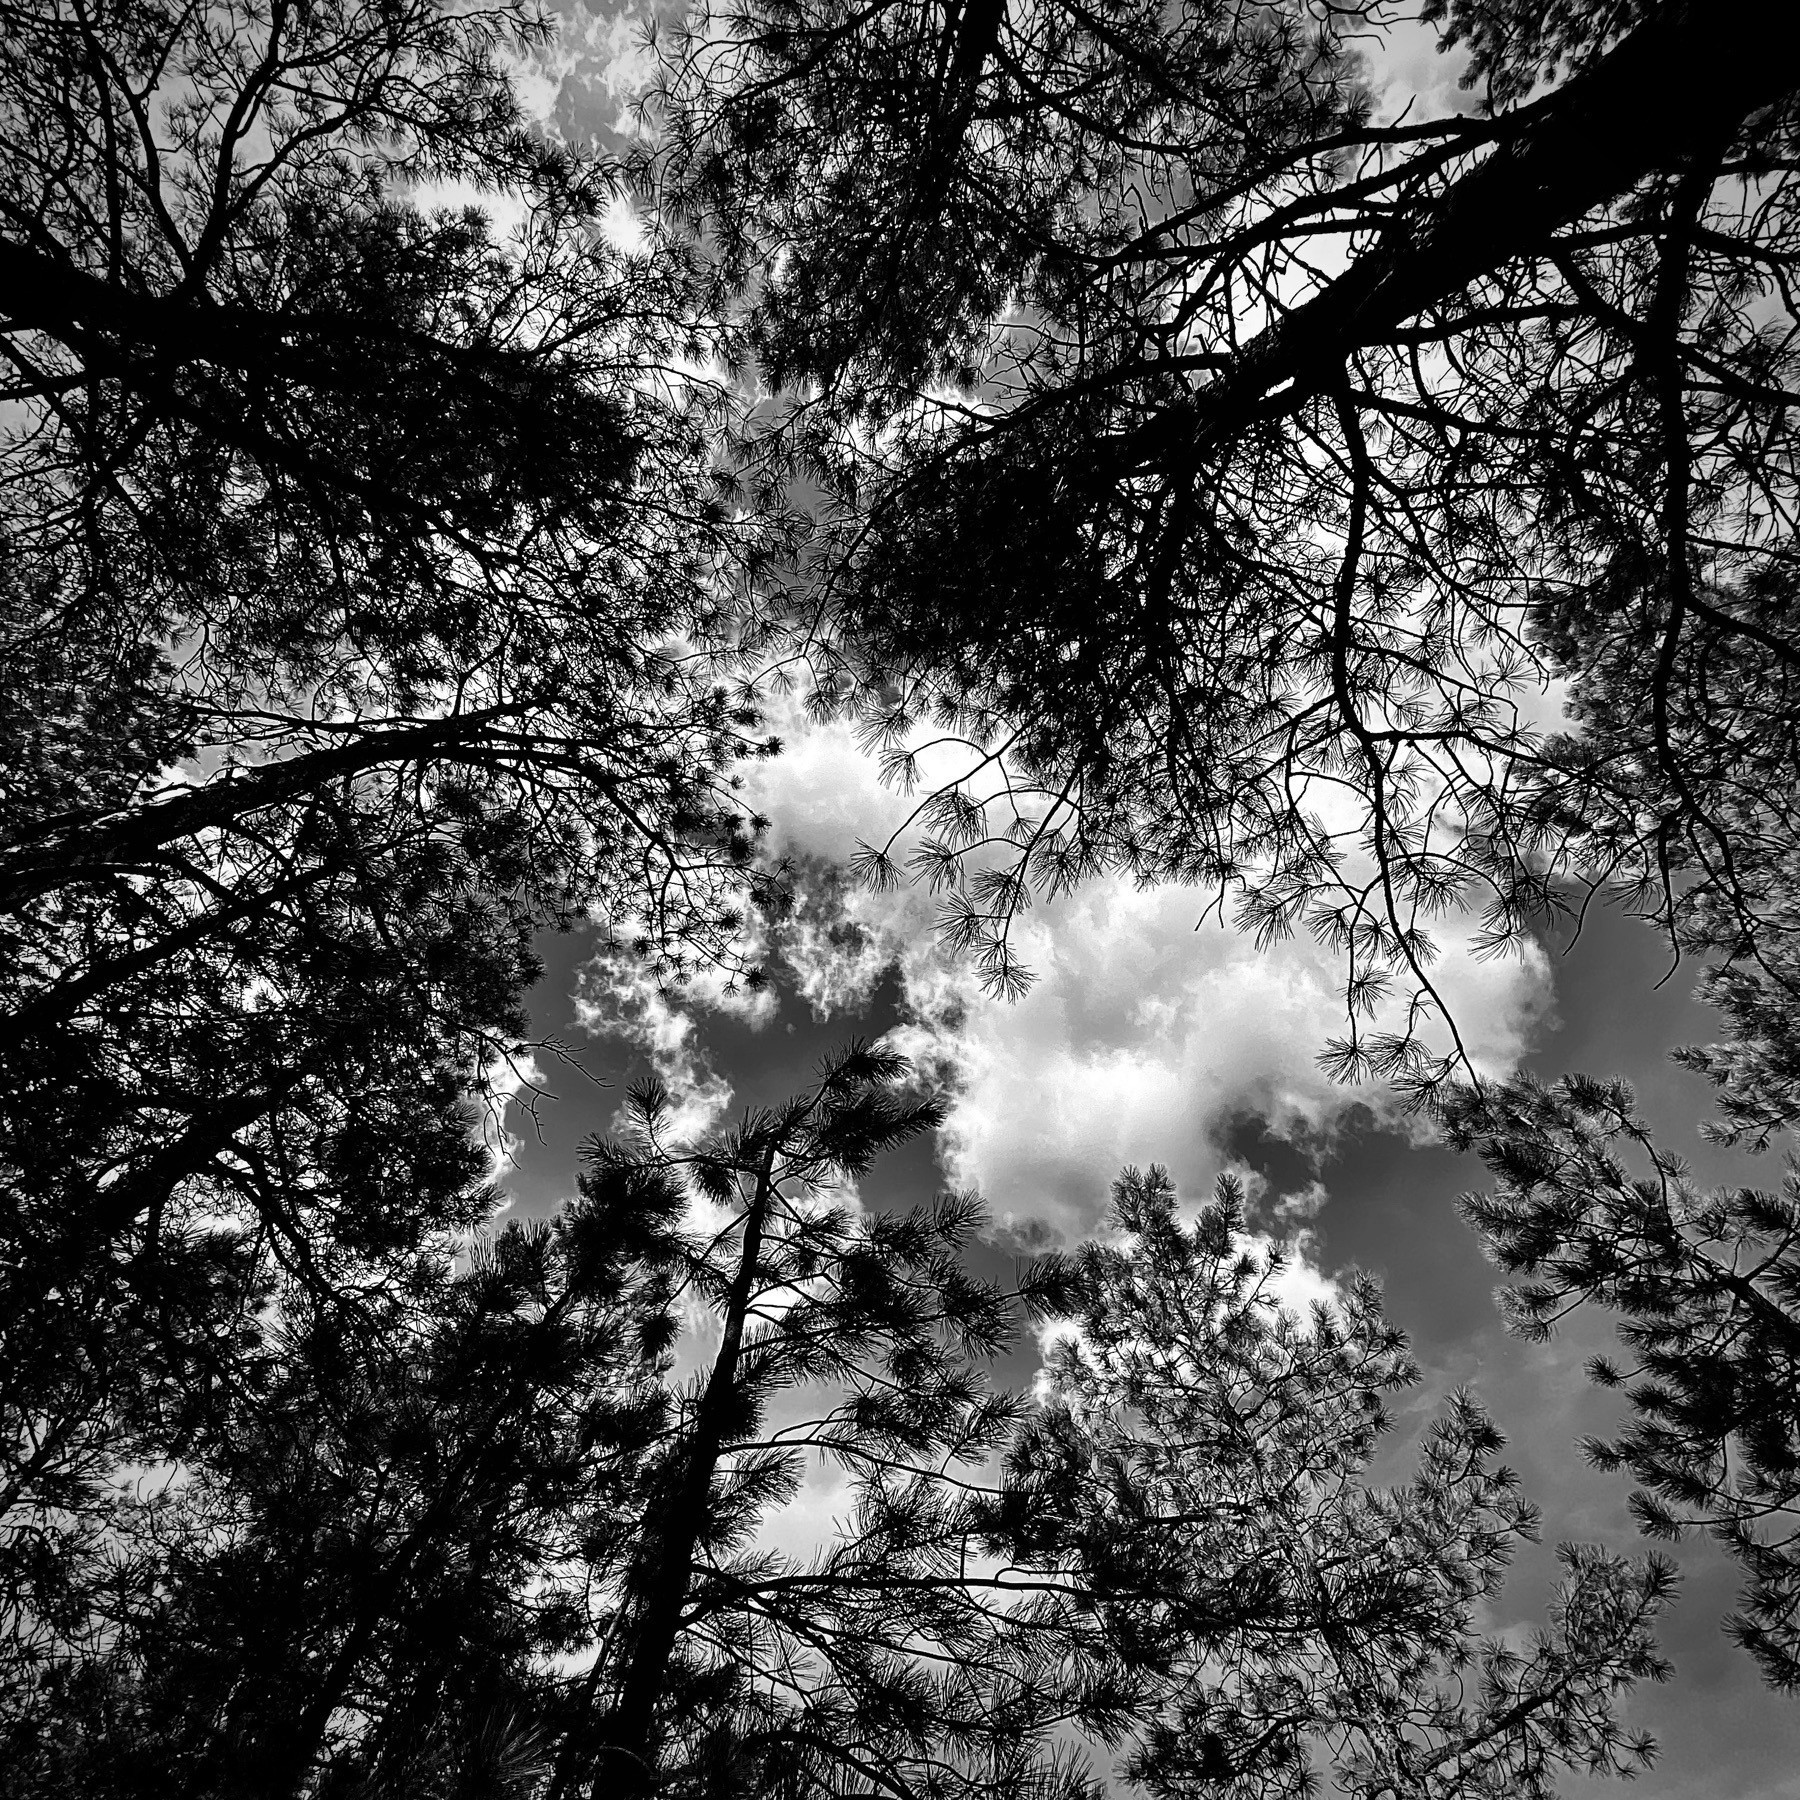 Looking directly up through pine trees at the sky.